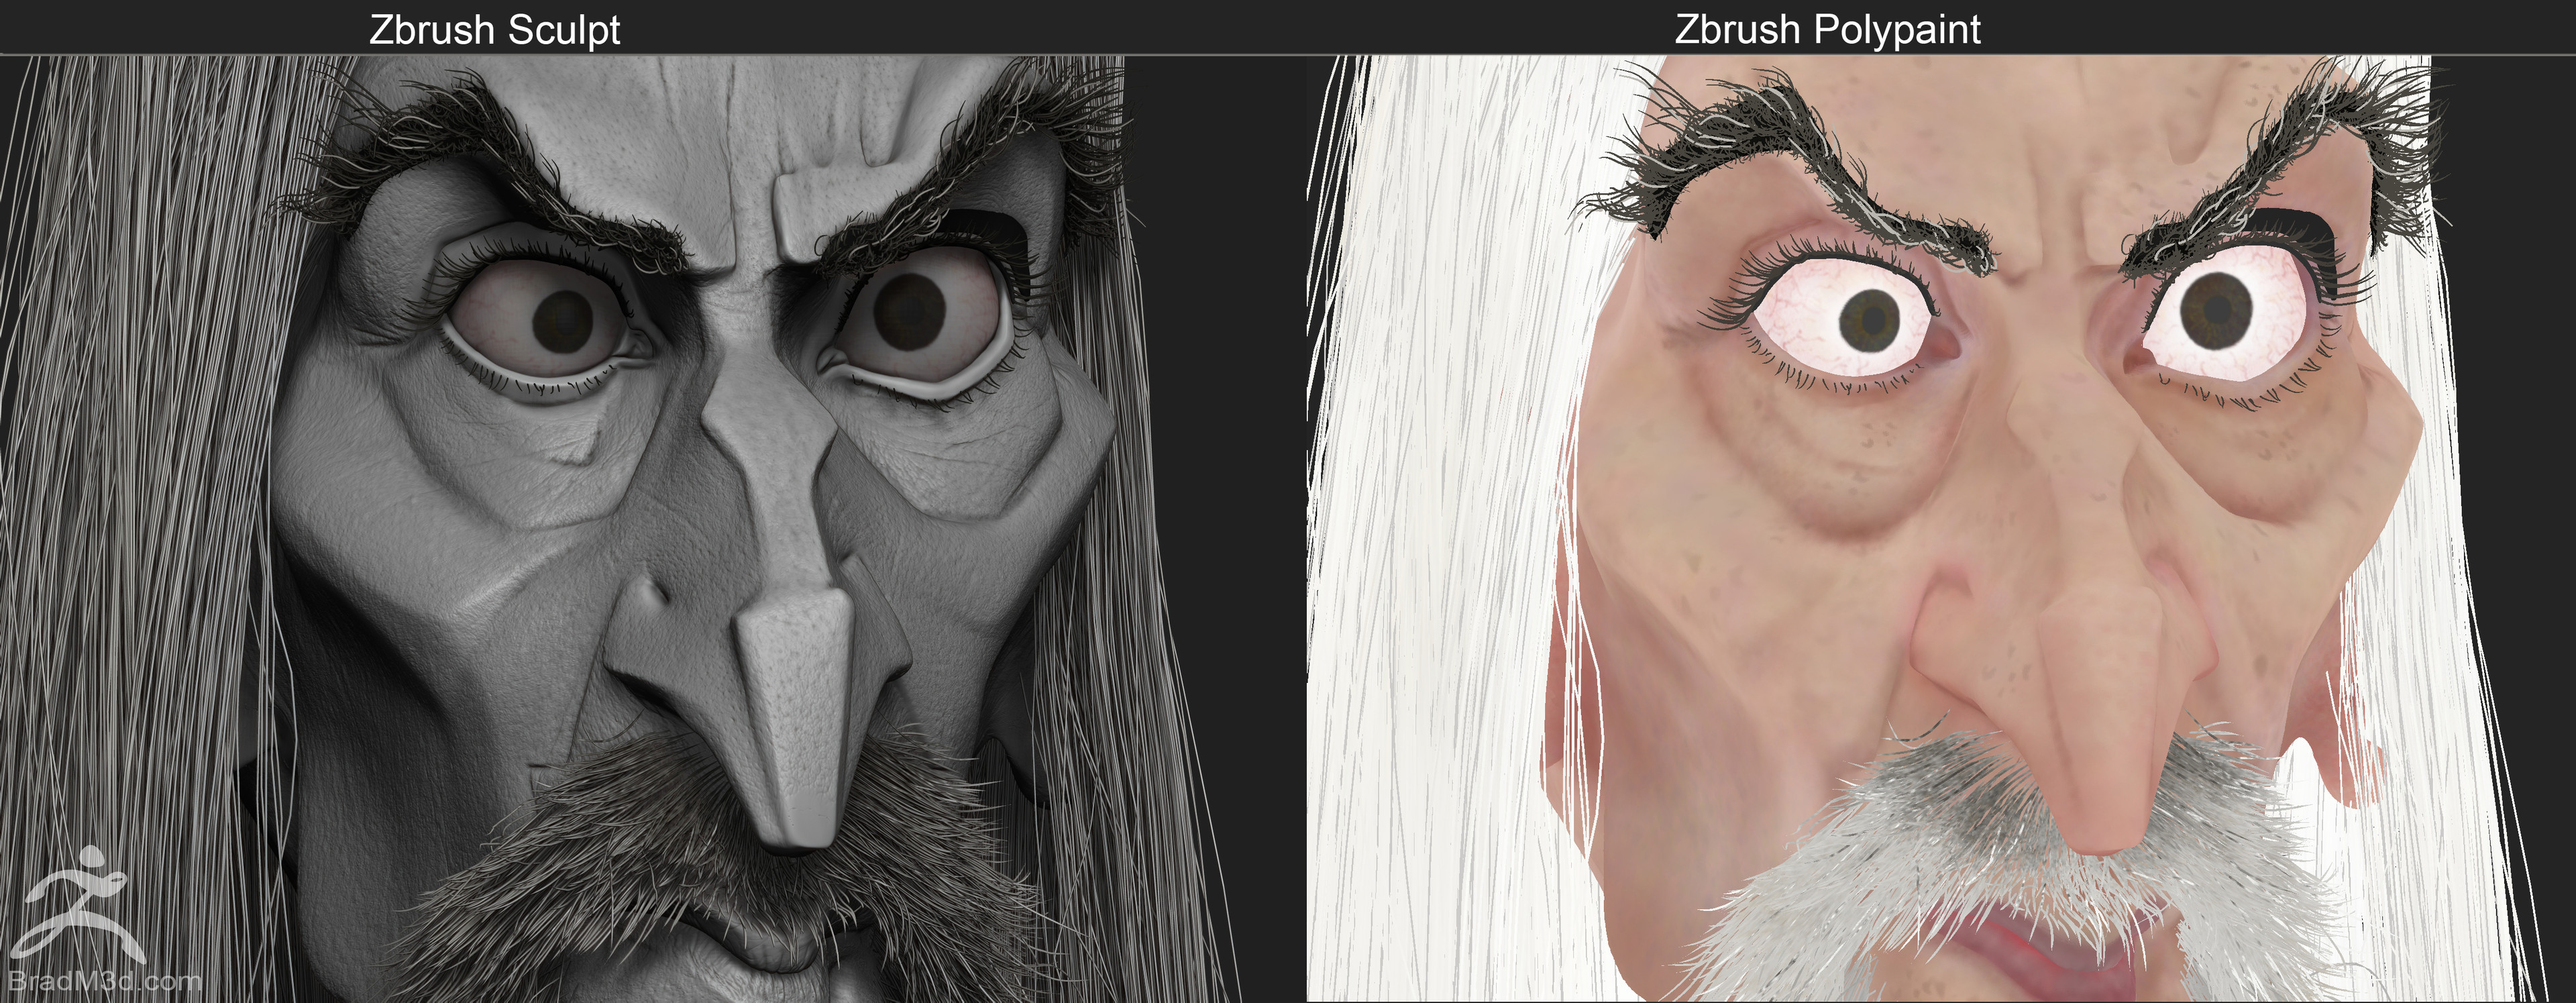 Simple Zbrush Sculpt BPR Render Closeup, and Flat Shaded polypaint demo